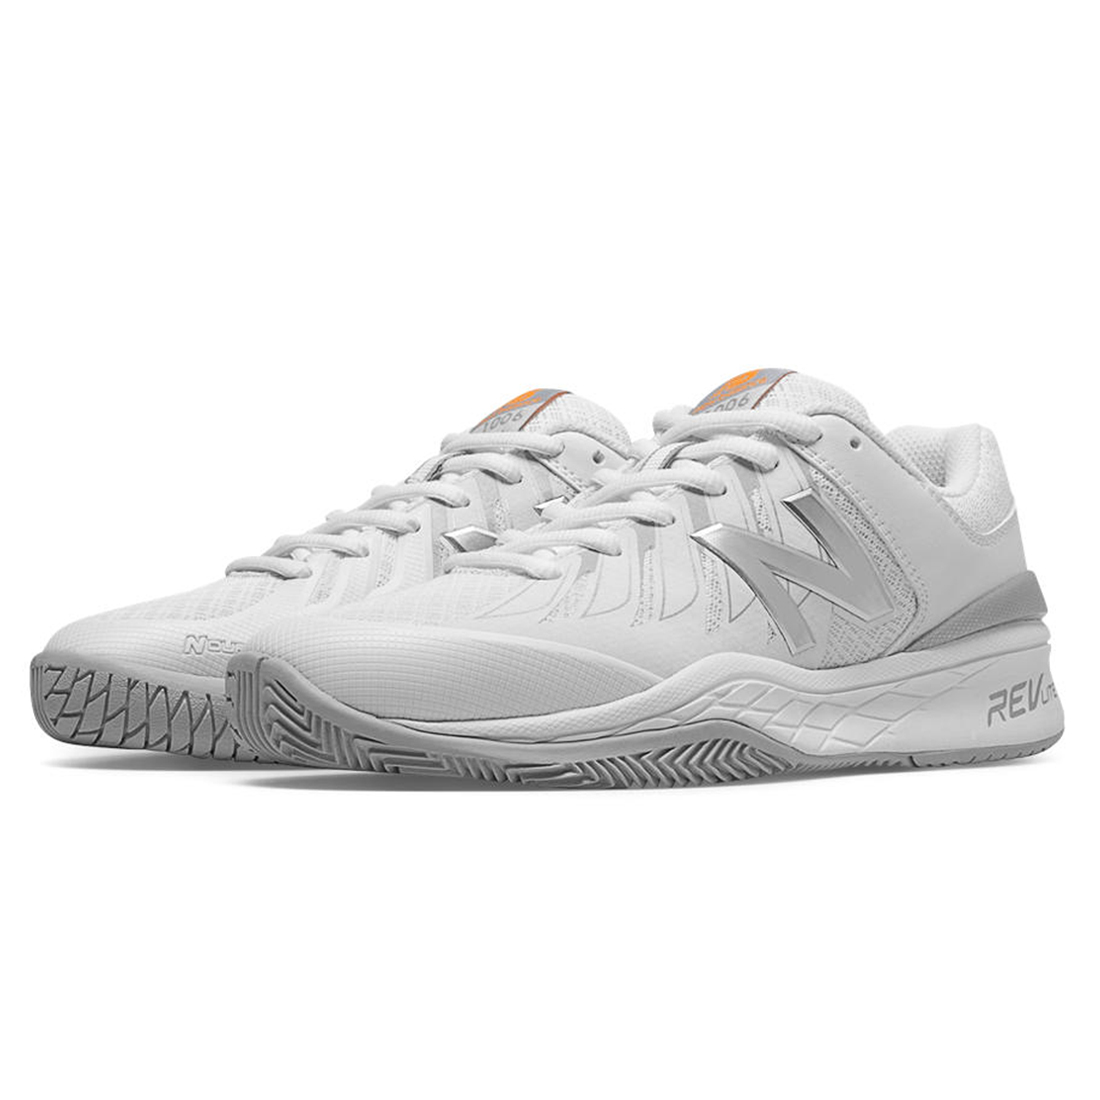 new balance shoes for tennis women's